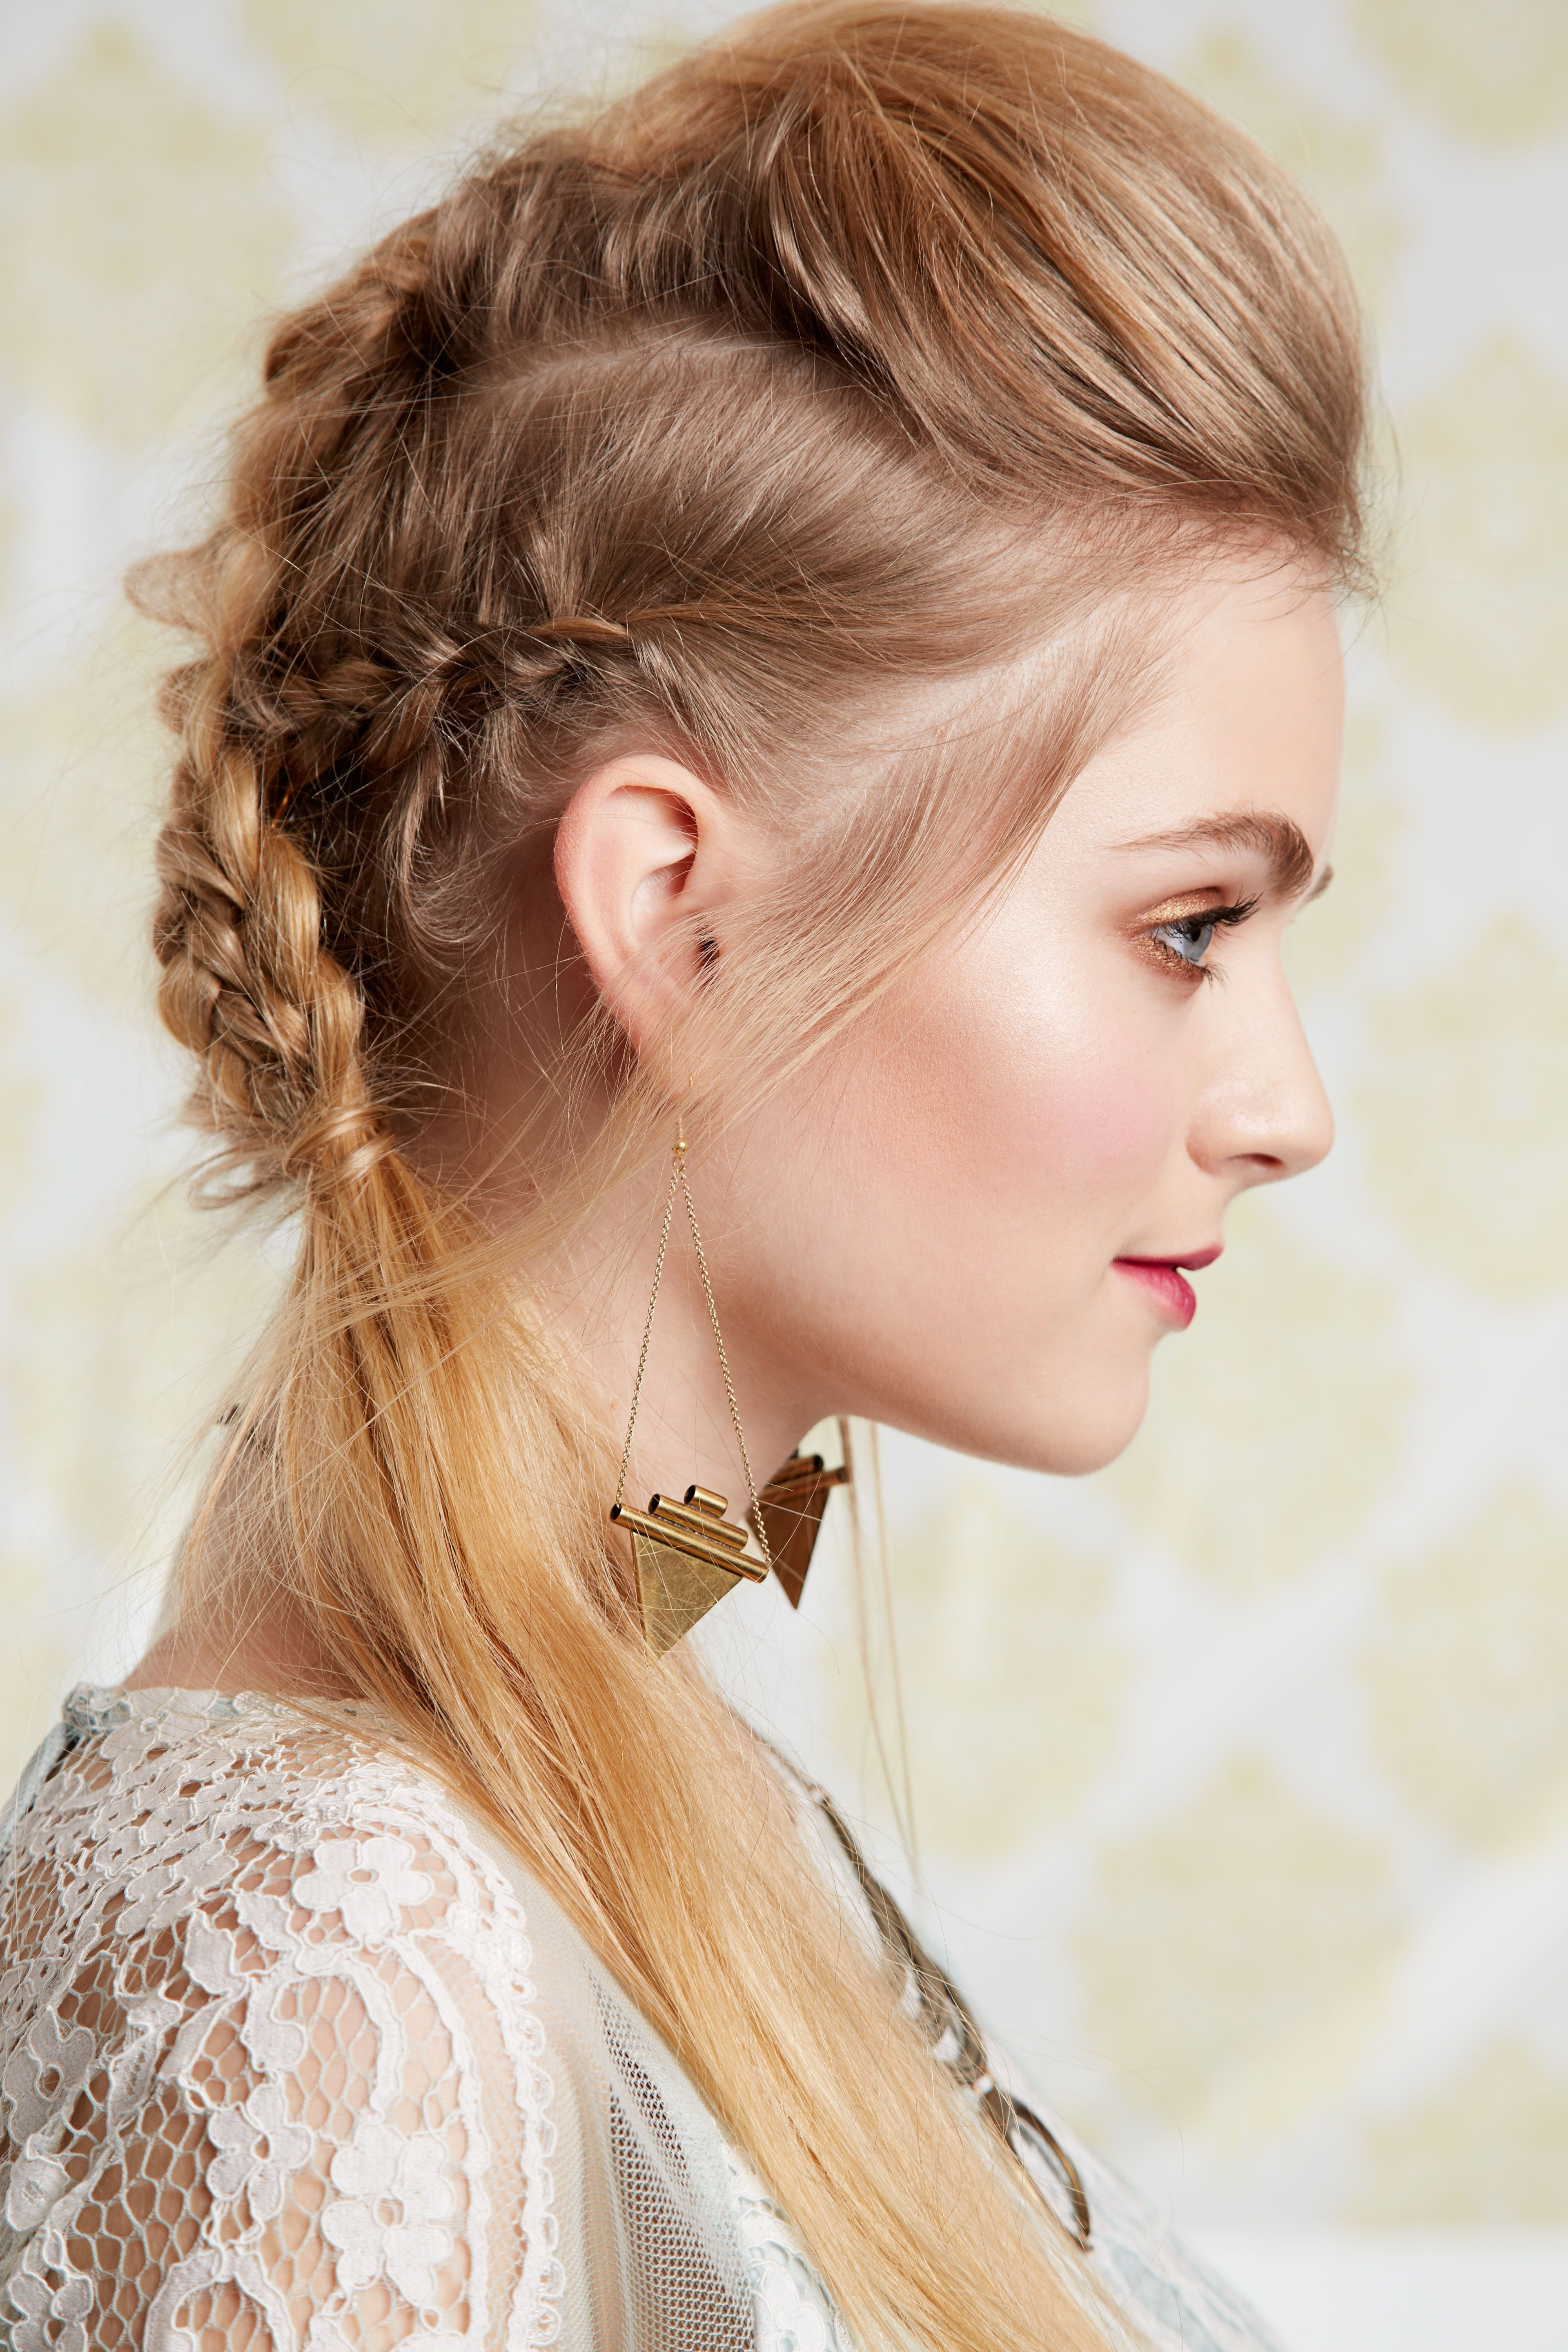 13 Cute Easy Hairstyles For 2018 – Best Quick Hairstyles For Dirty Hair Regarding Well Liked Messy Pony Hairstyles For Medium Hair With Bangs (View 2 of 20)